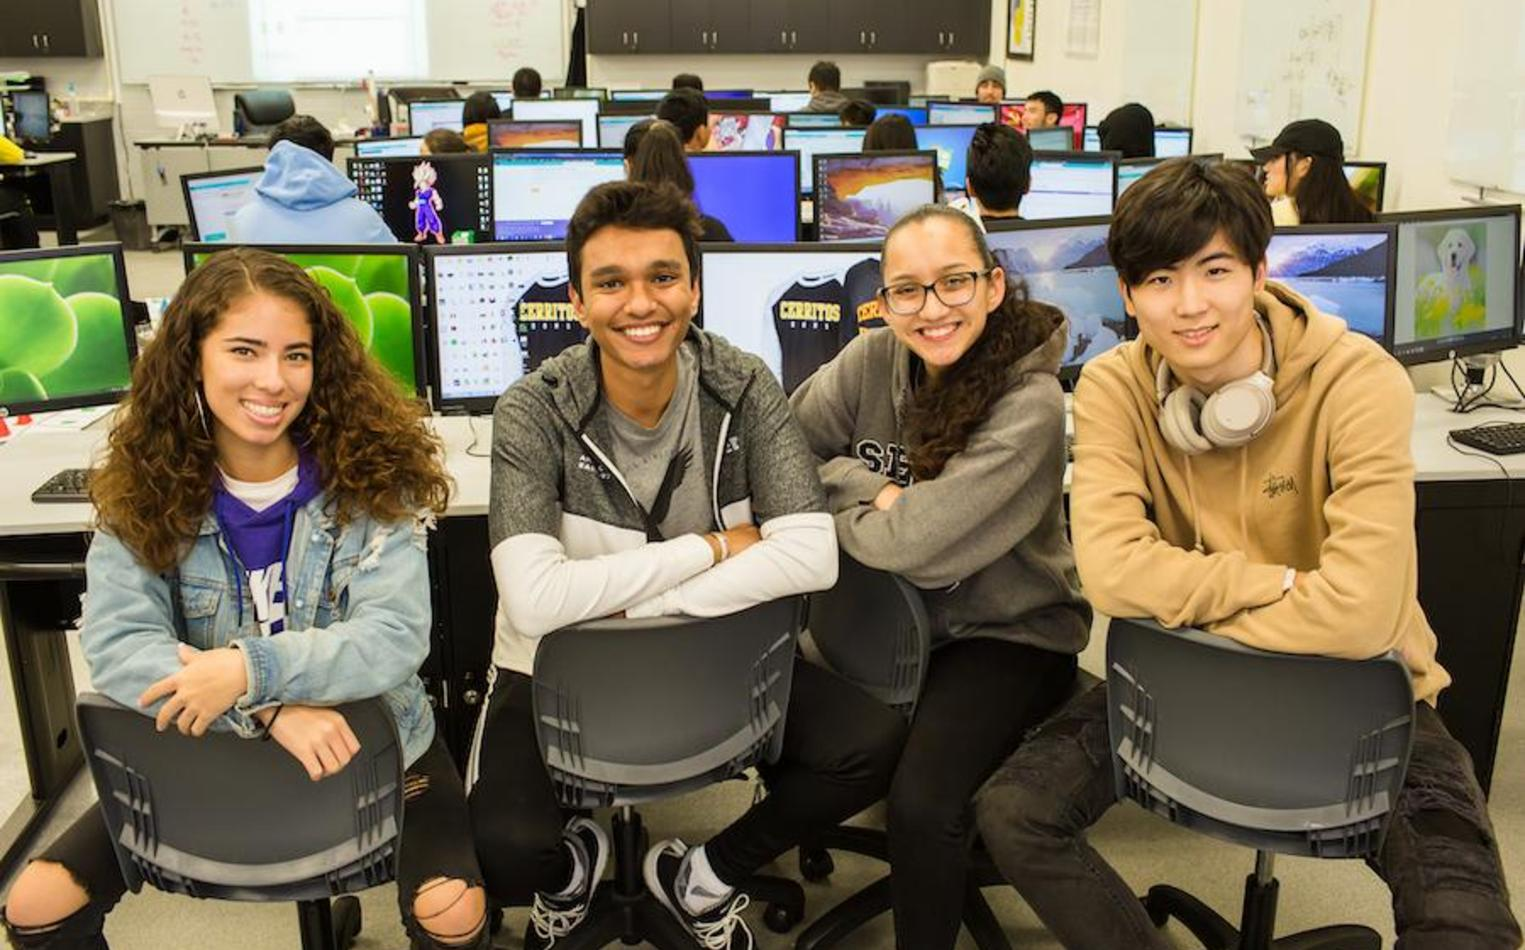 High school students posing together in computer lab.